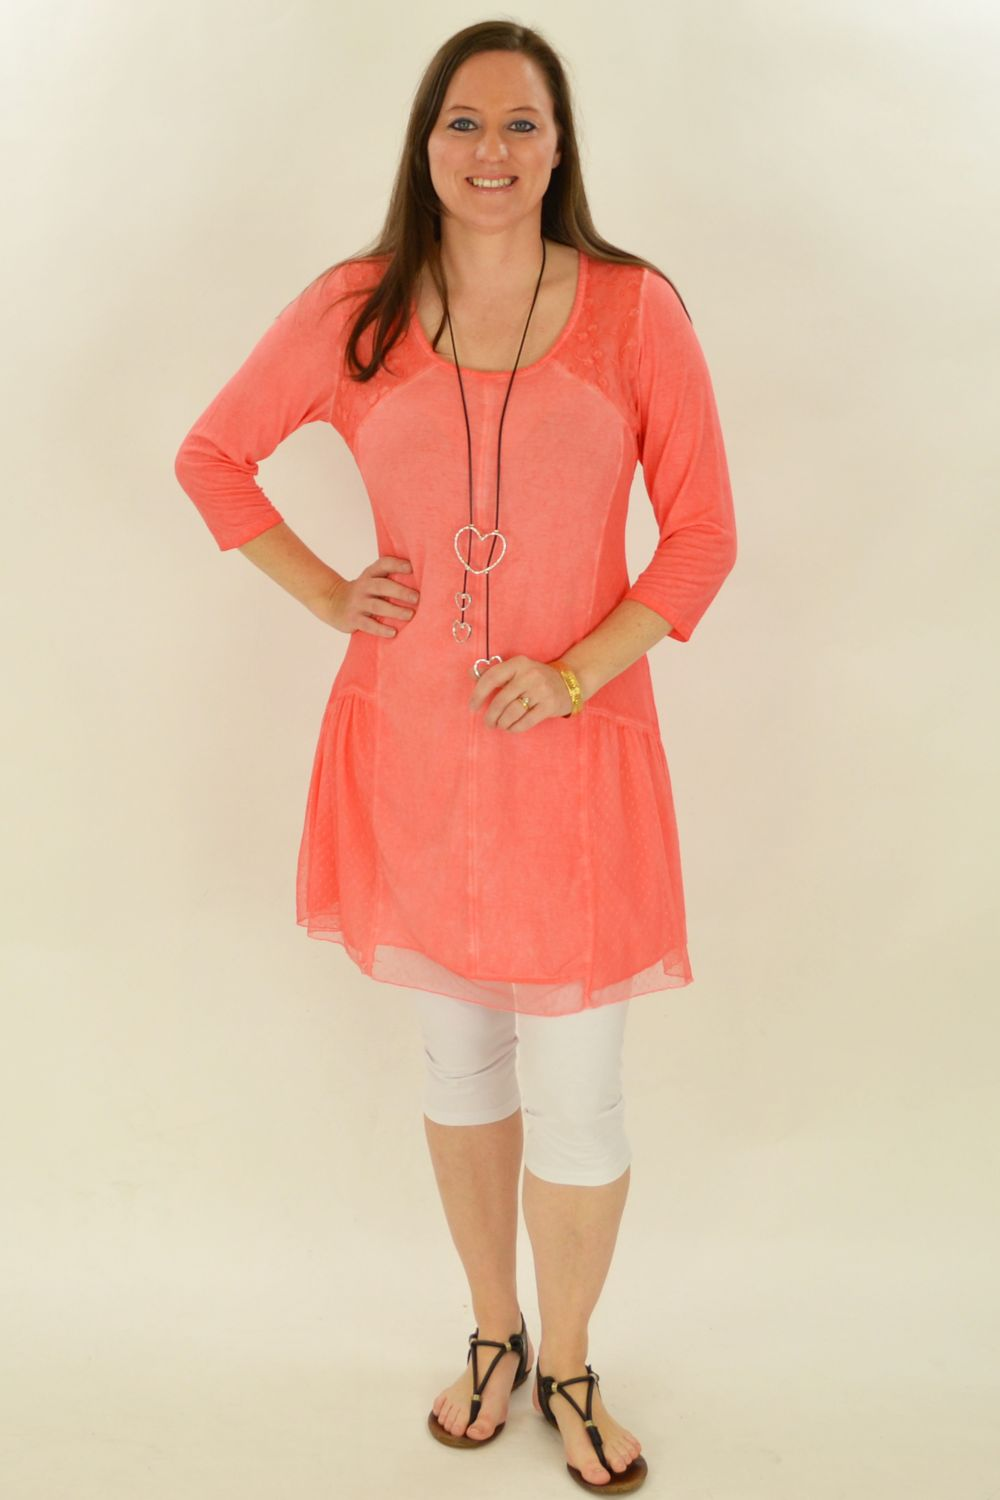 Peaches and Cream Tunic Top - at I Love Tunics @ www.ilovetunics.com = Number One! Tunics Destination